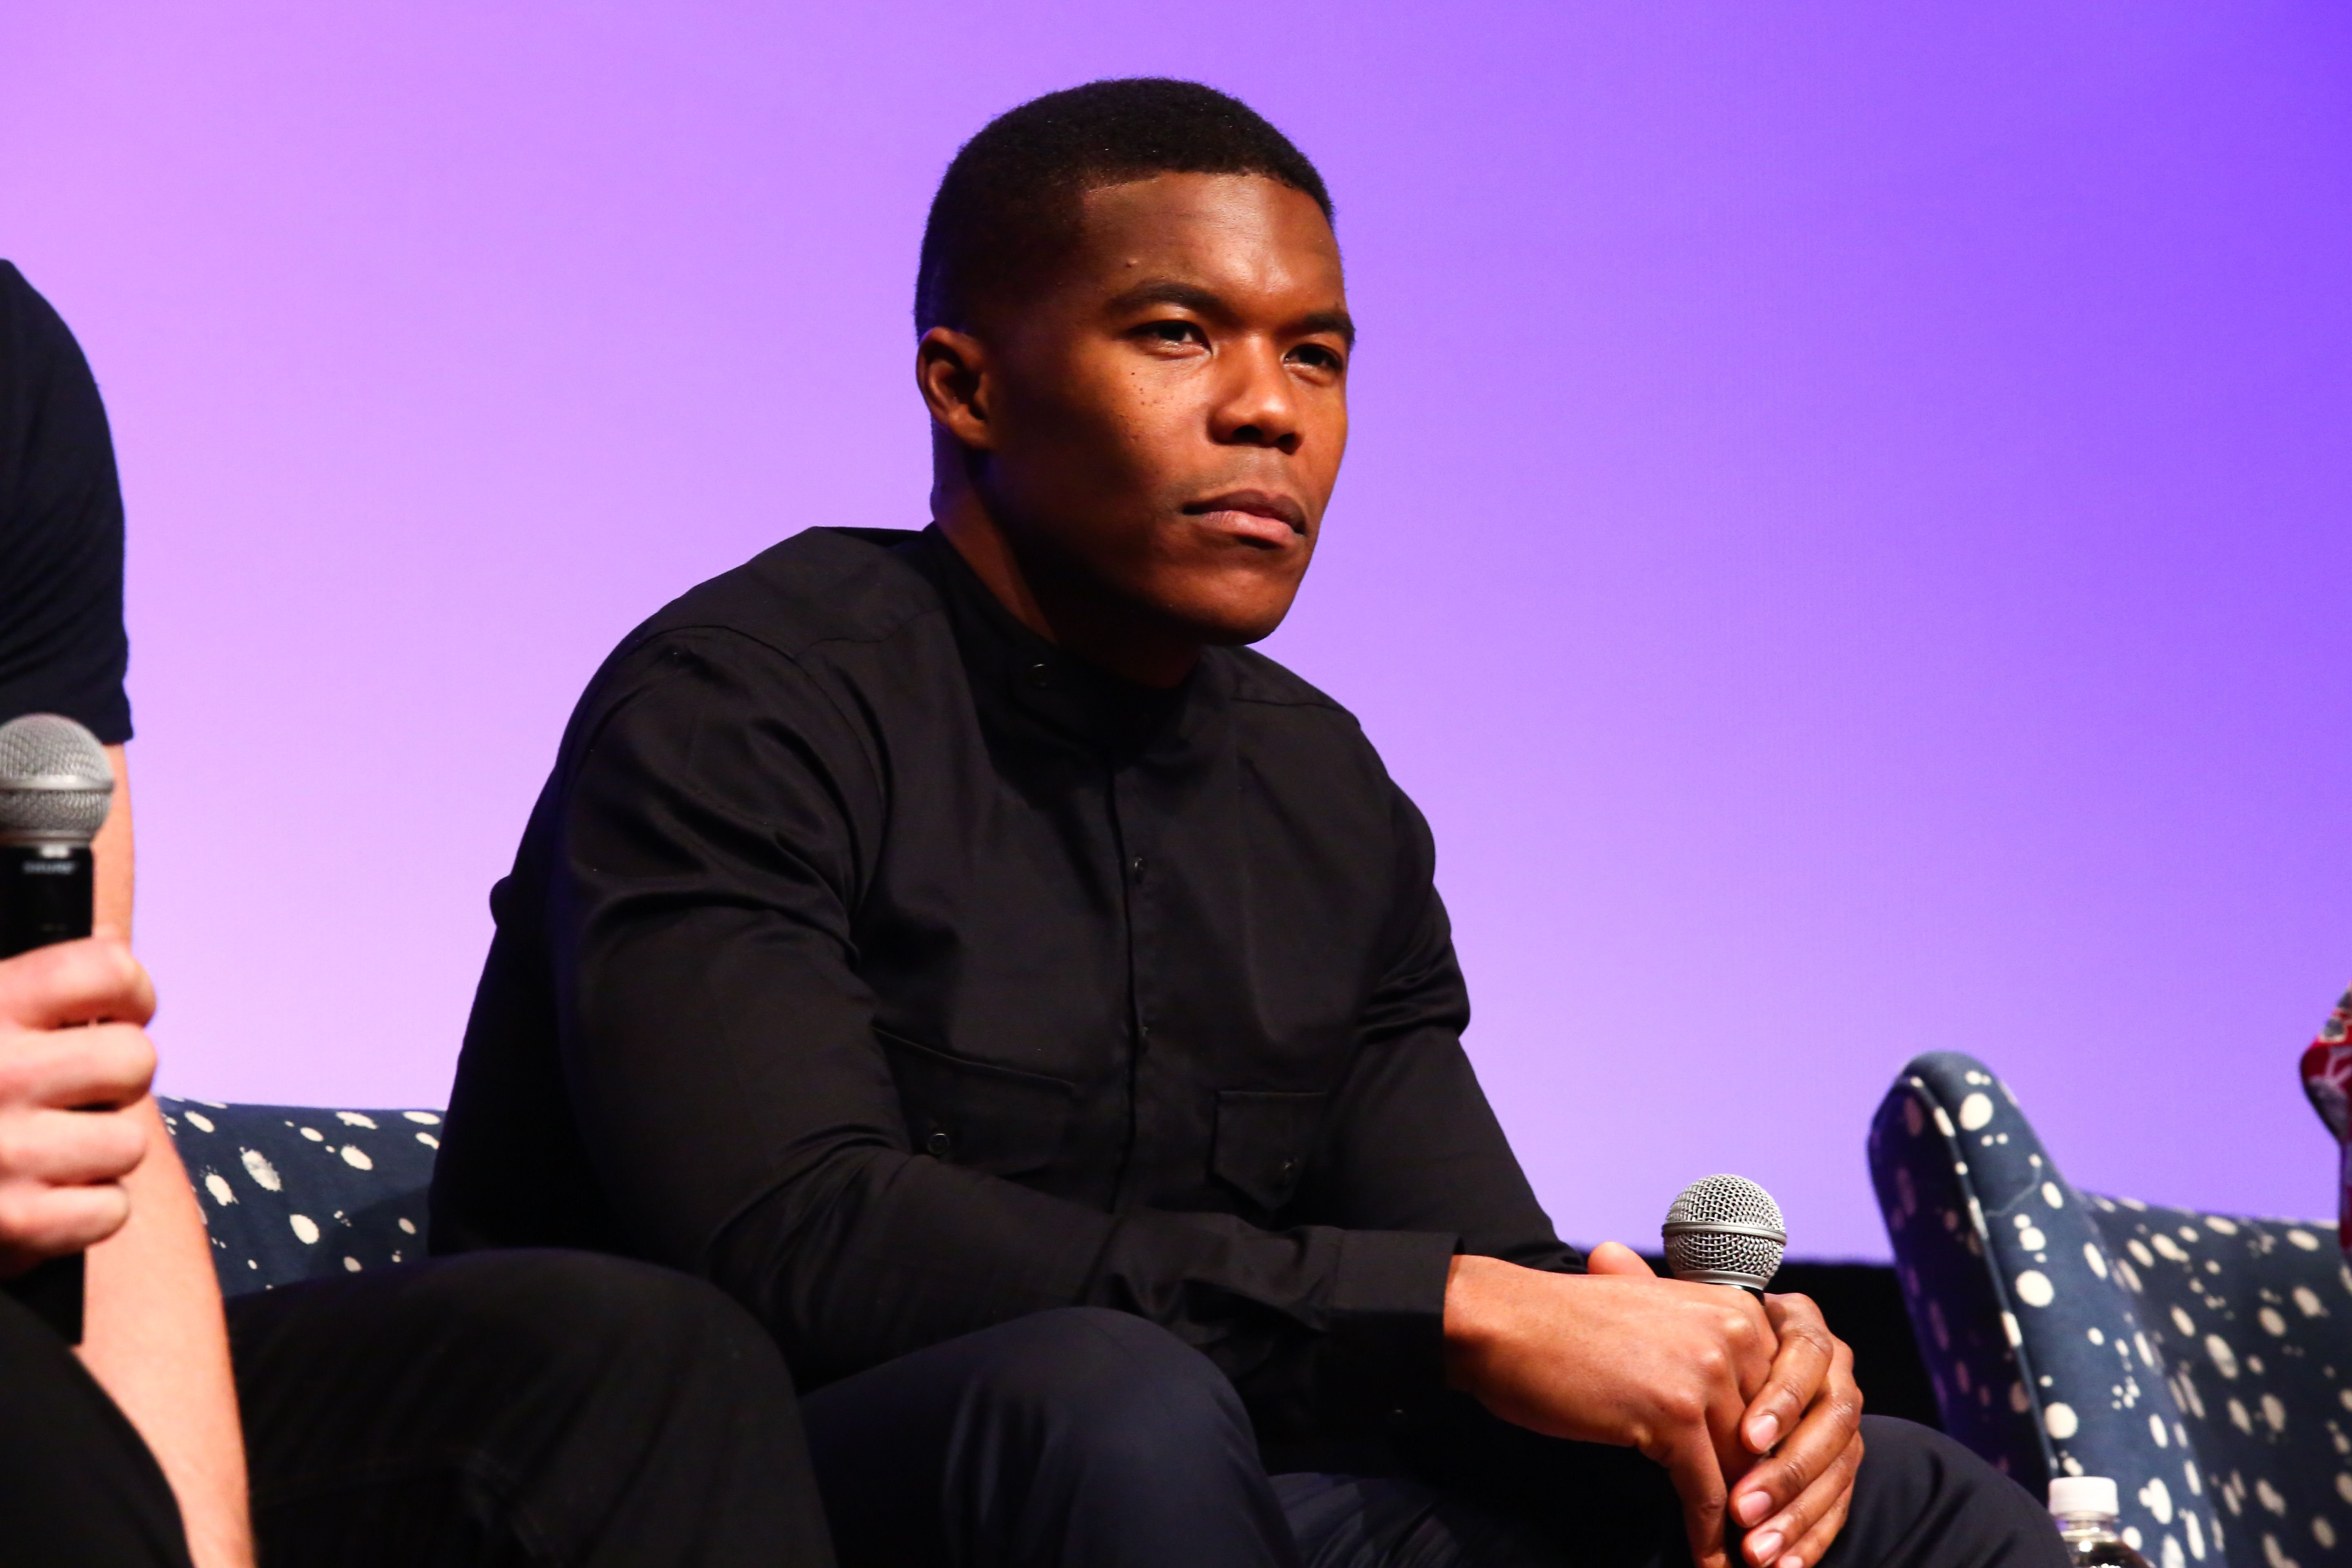 Gaius Charles attends a Q&A for 'Taken' on Day Three of the aTVfest 2017 at SCADshow on February 4, 2017 in Atlanta, Georgia. | Photo: Getty Images